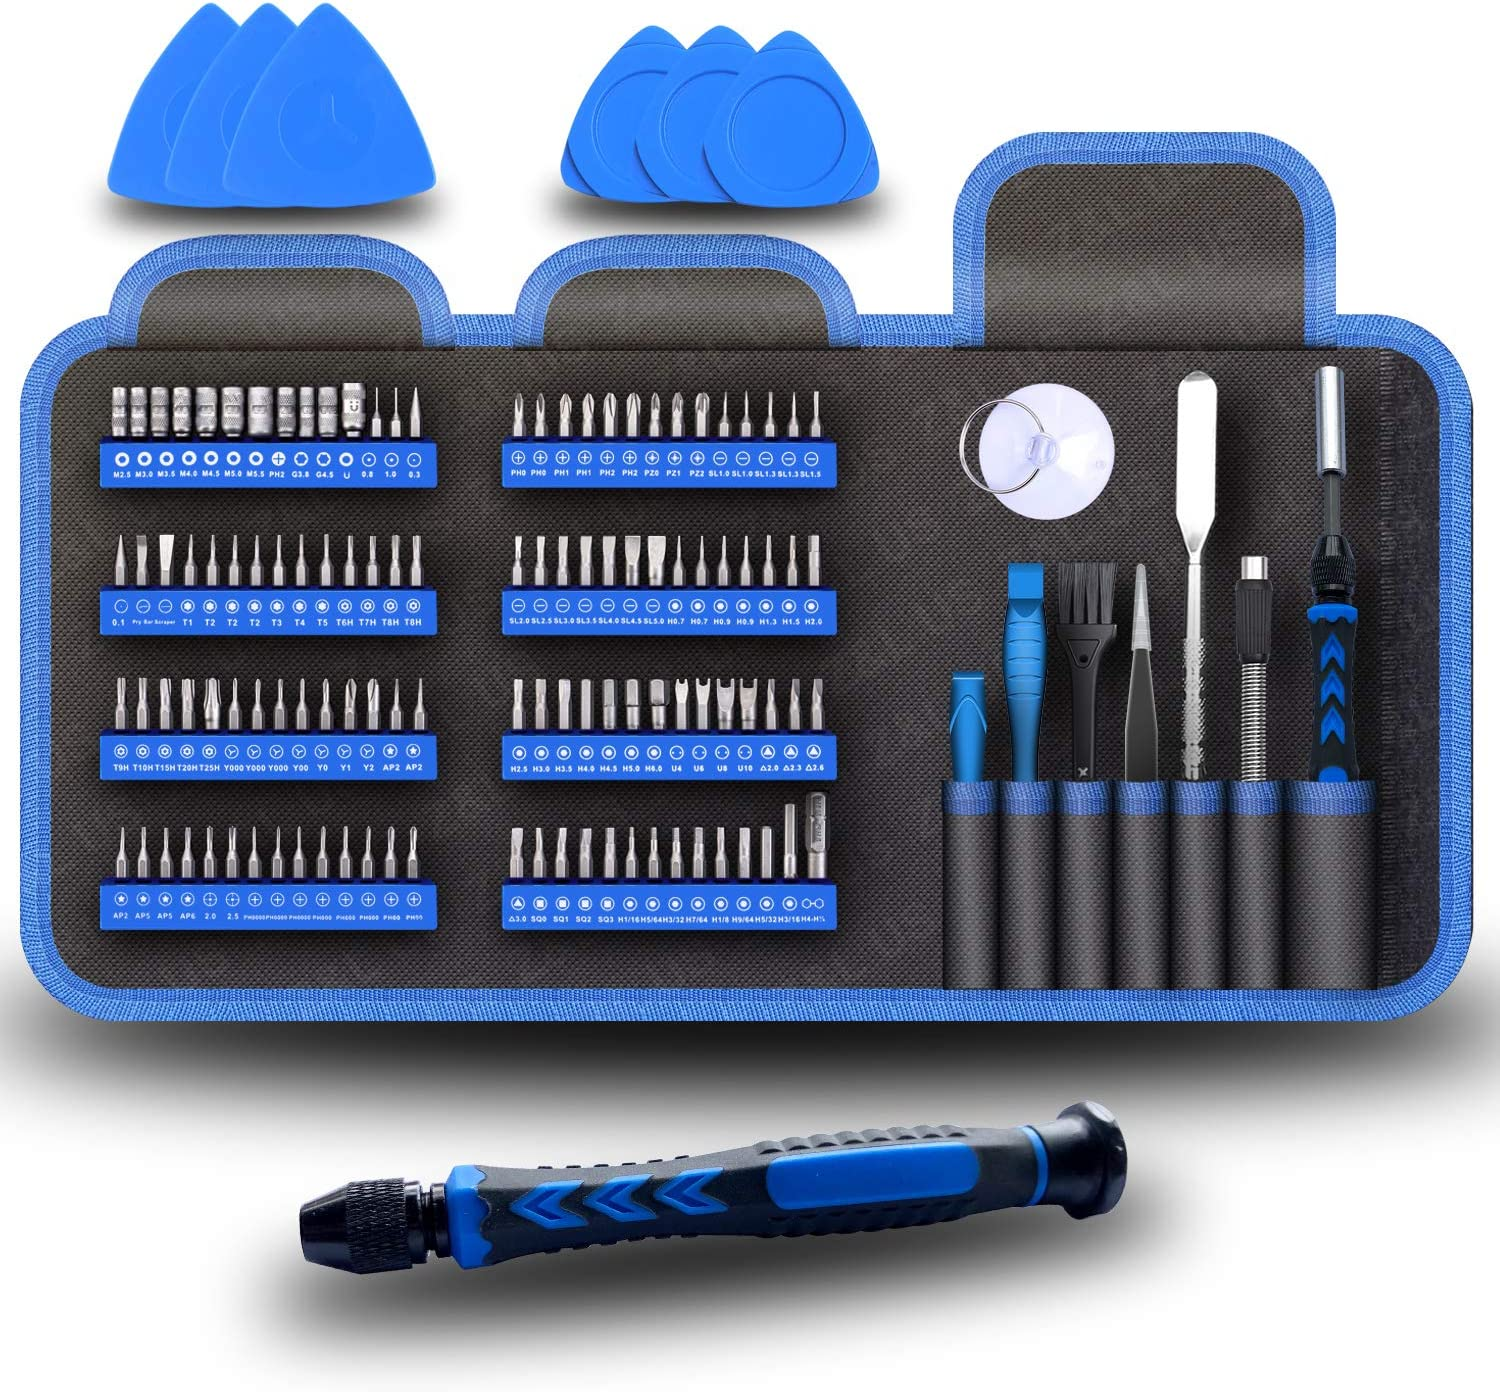 LB1 High Performance Professional 54 Piece Tool Screwdriver Bit Set Repair Kit Hand Tool Kit for Acer Black 11.6 Travelmate B113M PC with Intel Core i3-2375M Processor and Win 10 Operating System